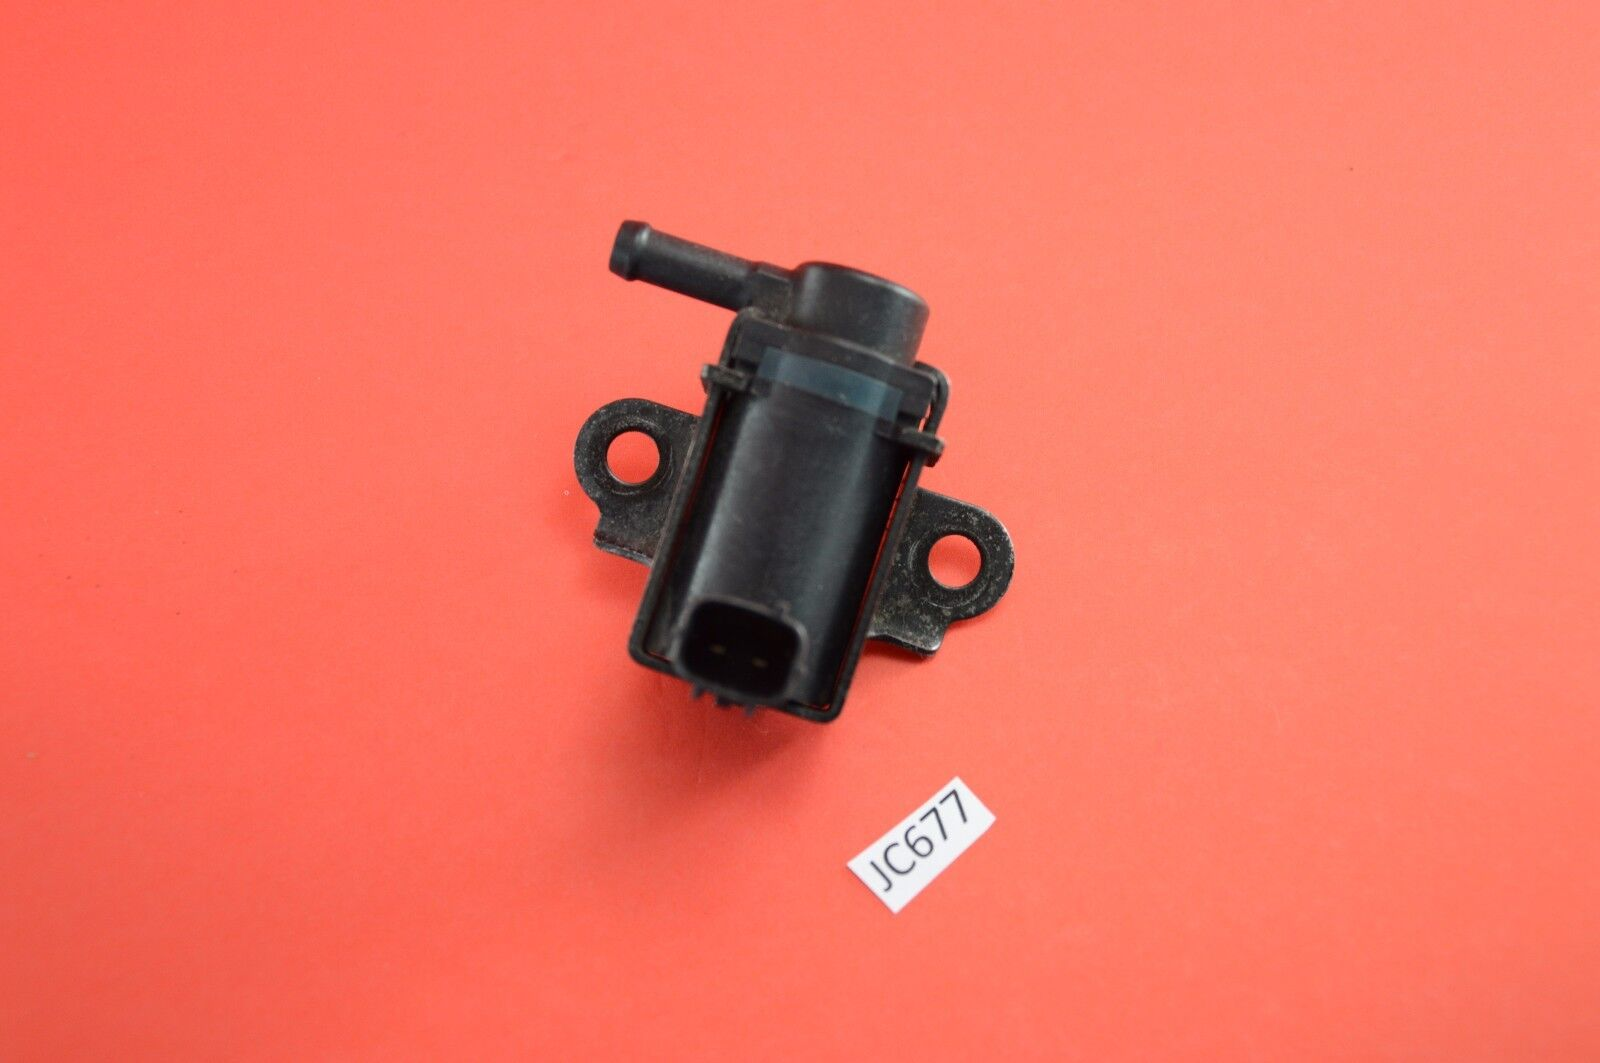 Used Acura Integra EGR Valves And Parts For Sale - 1996 acura integra parts